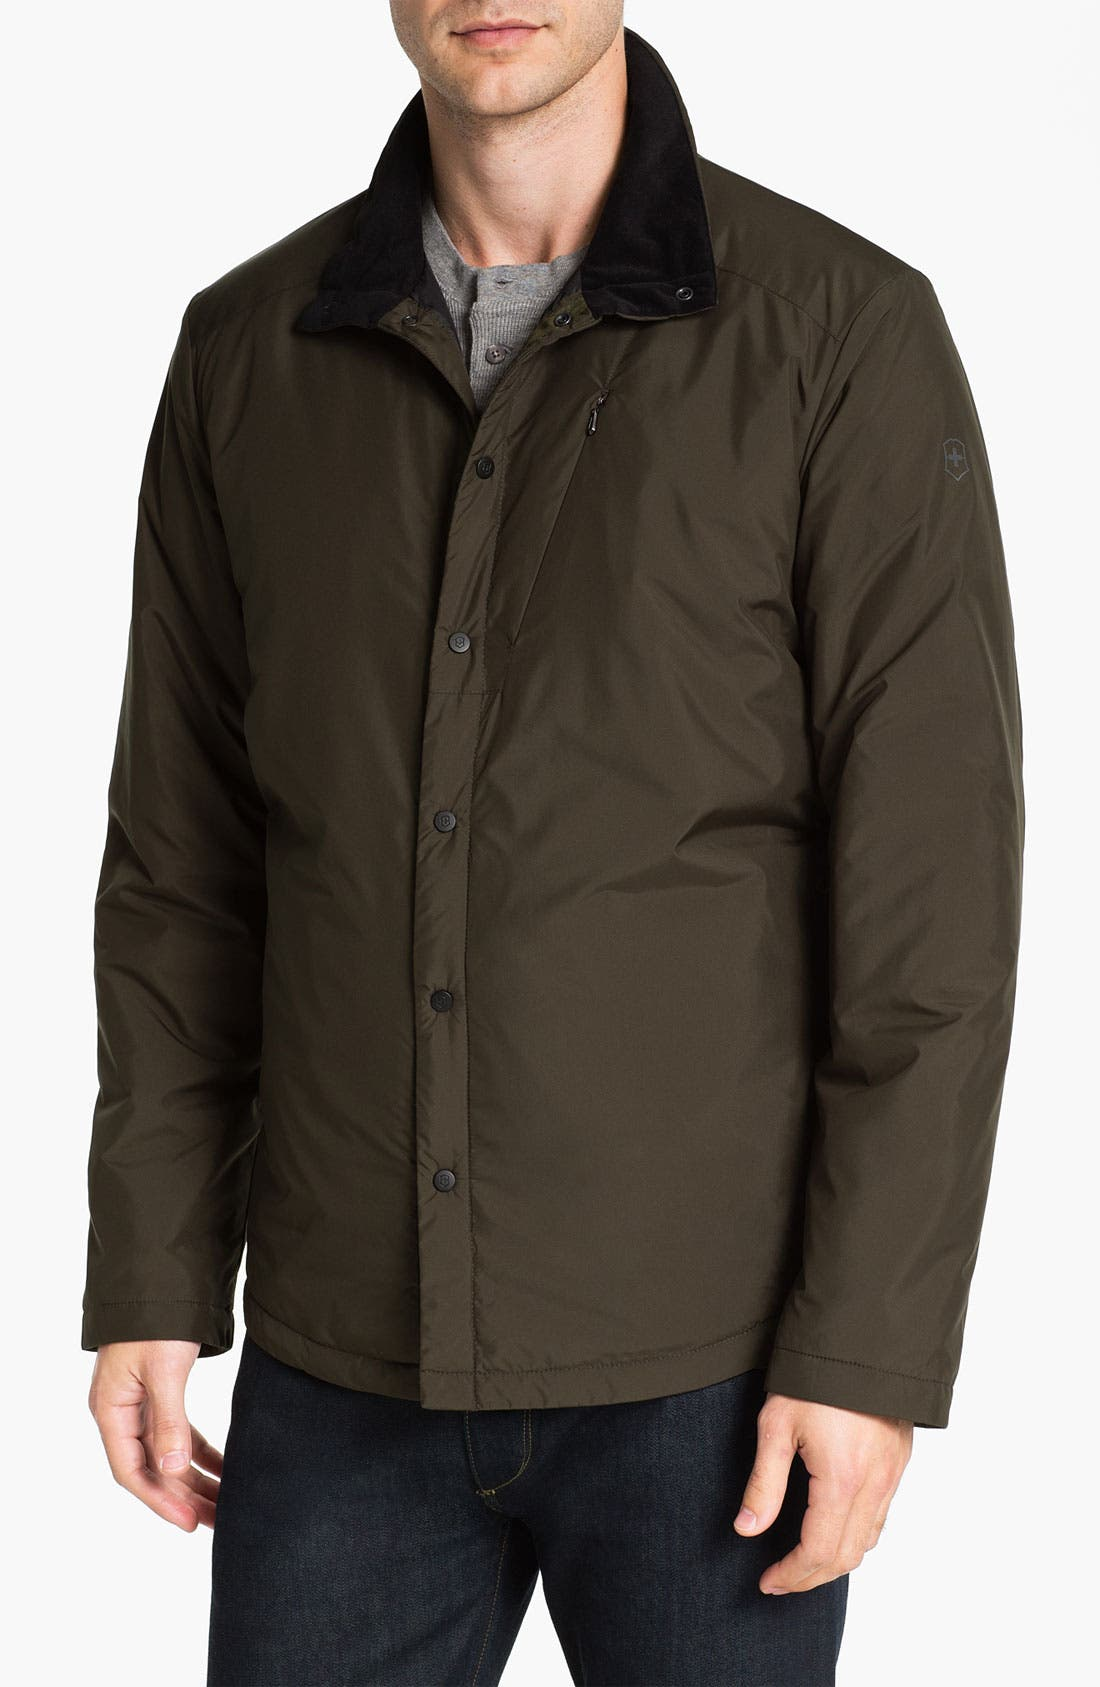 Main Image - Victorinox Swiss Army® 'Bernin' Insulated Jacket (Online Only)